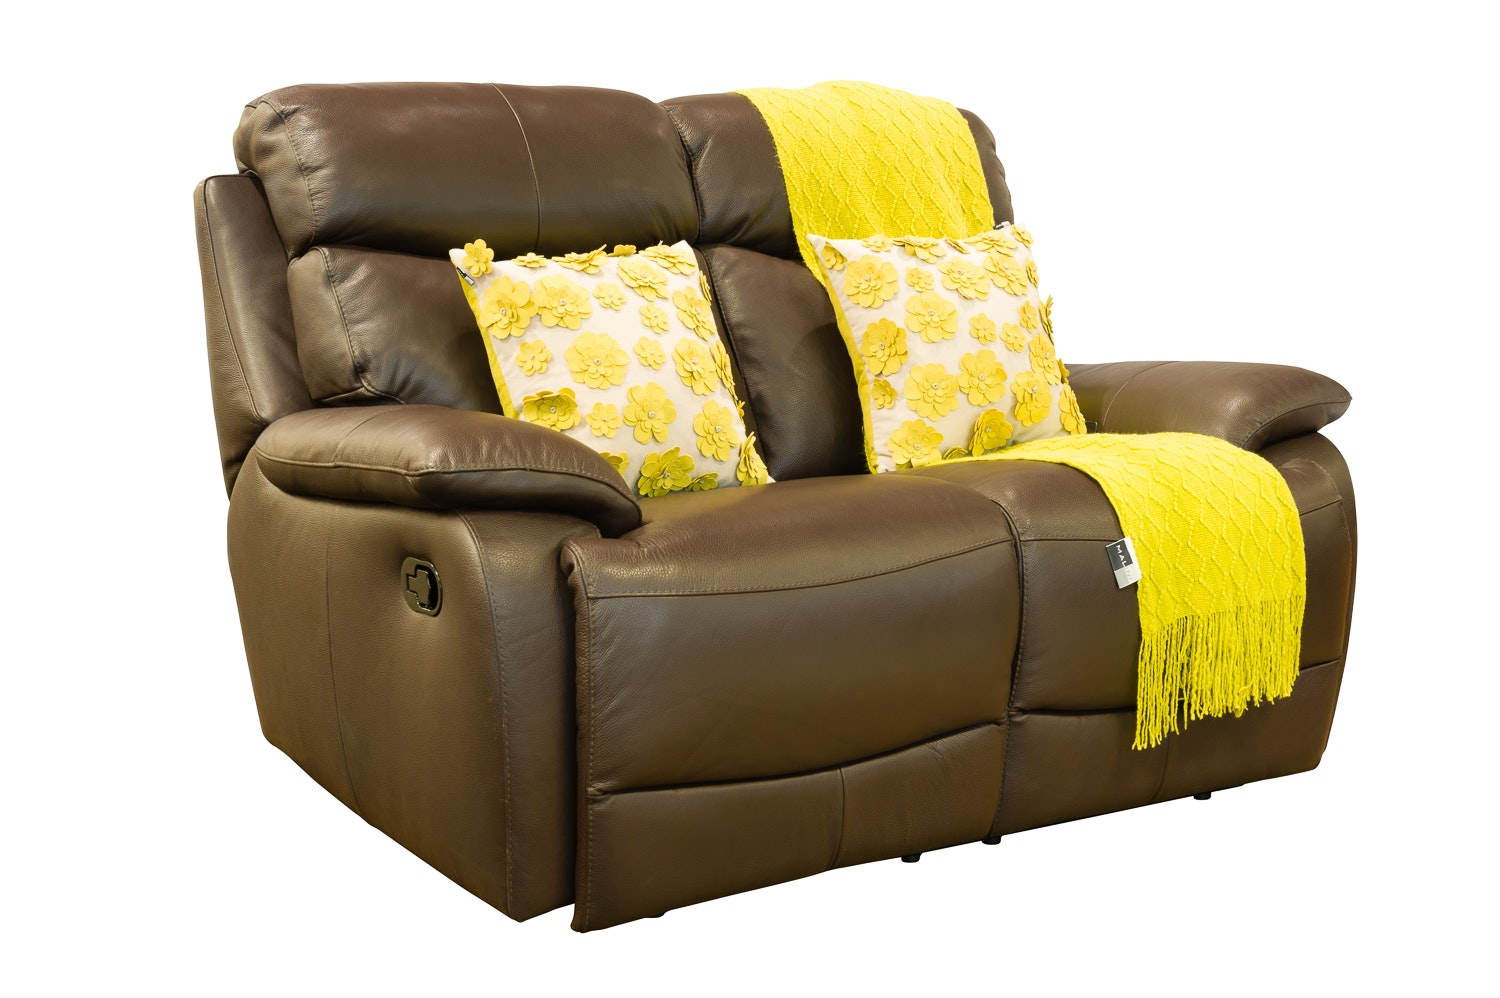 Seline 2-Seater Leather Recliner Sofa